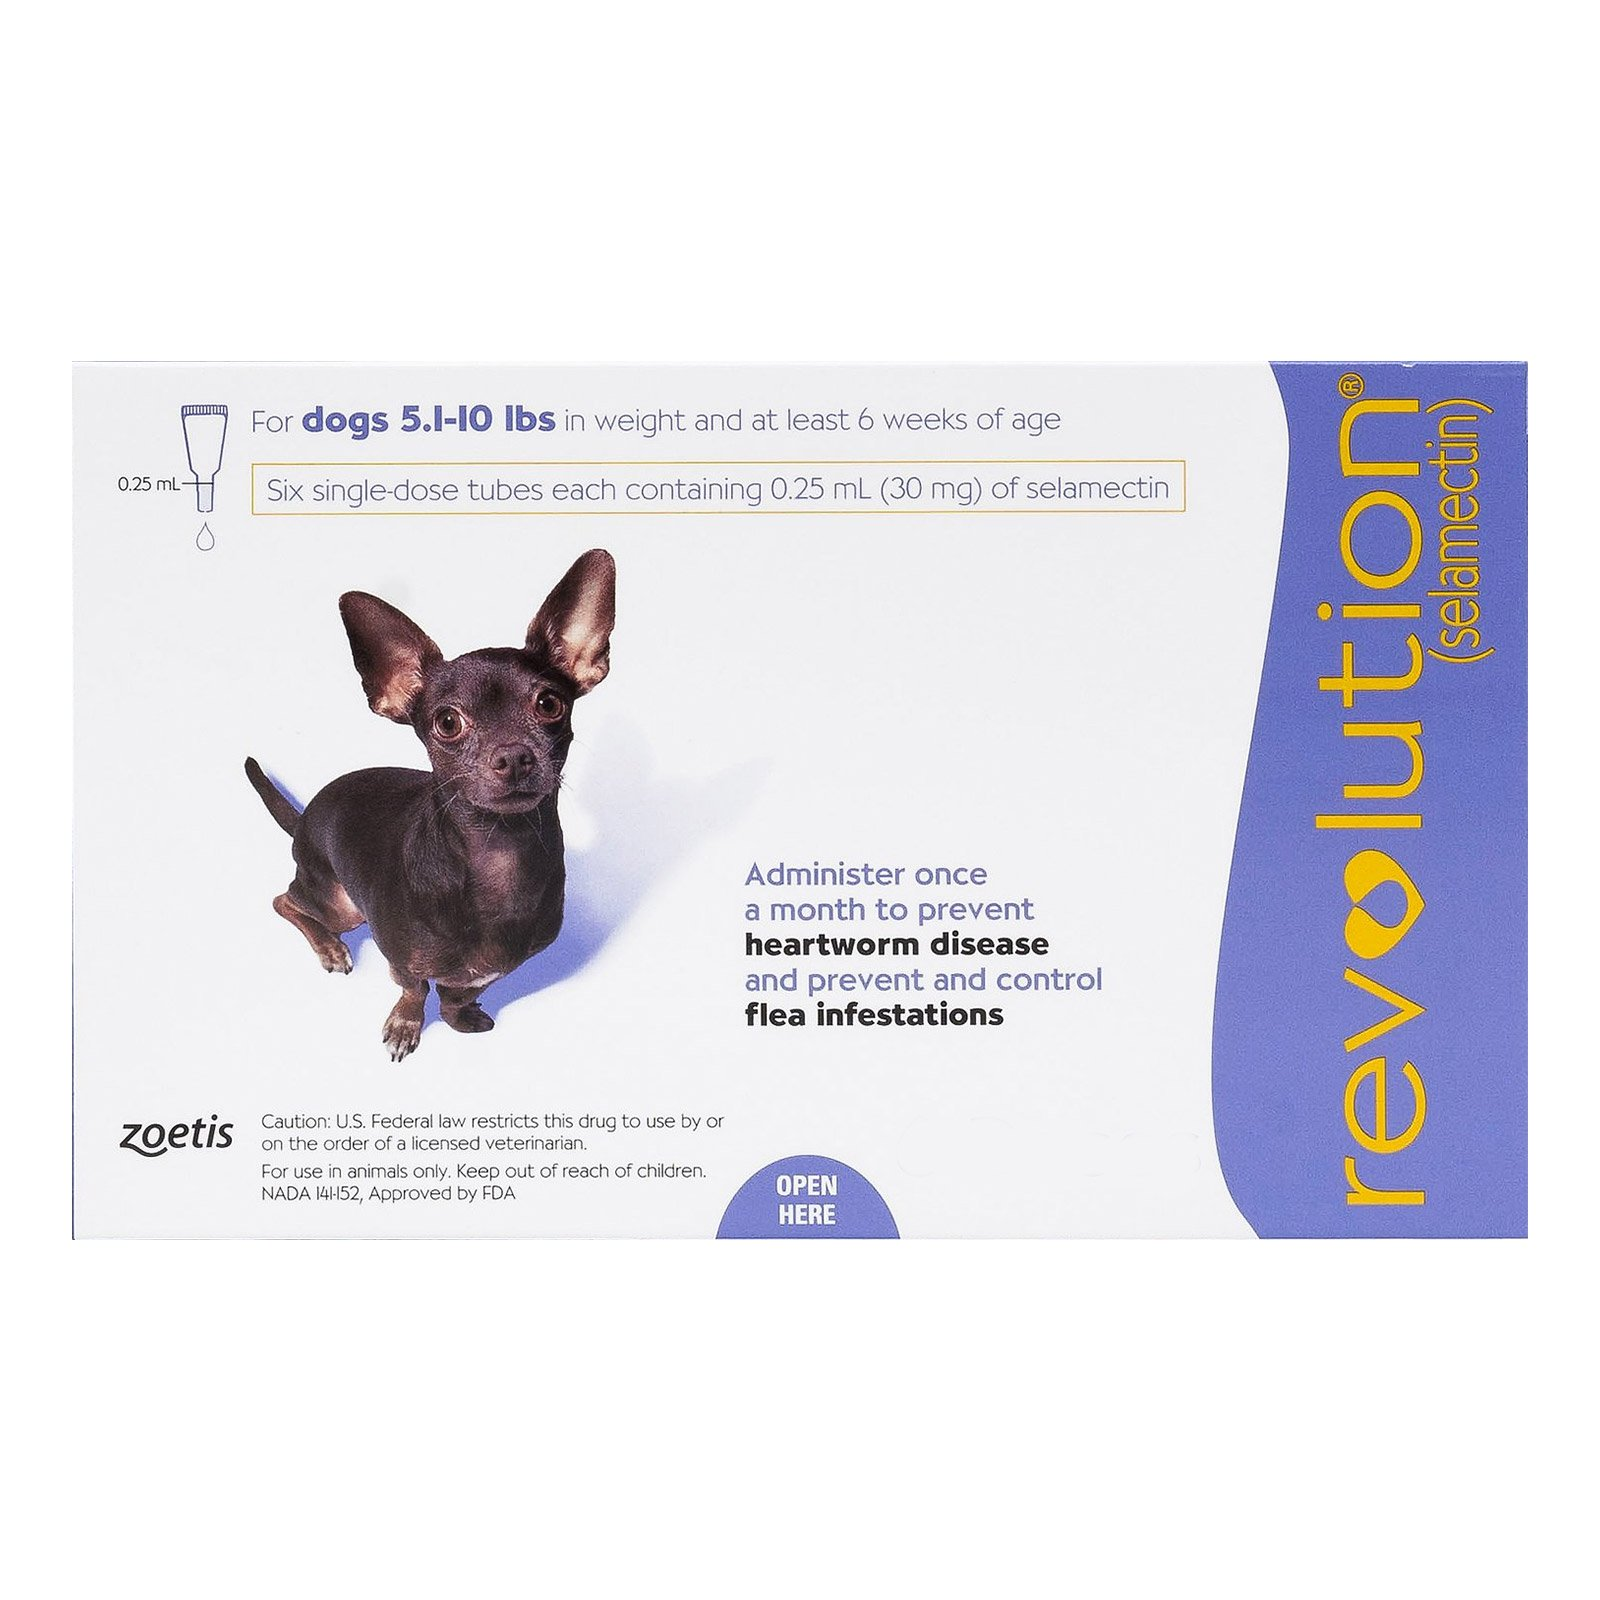 revolution-for-very-small-dogs-5-1-10-lbs-purple